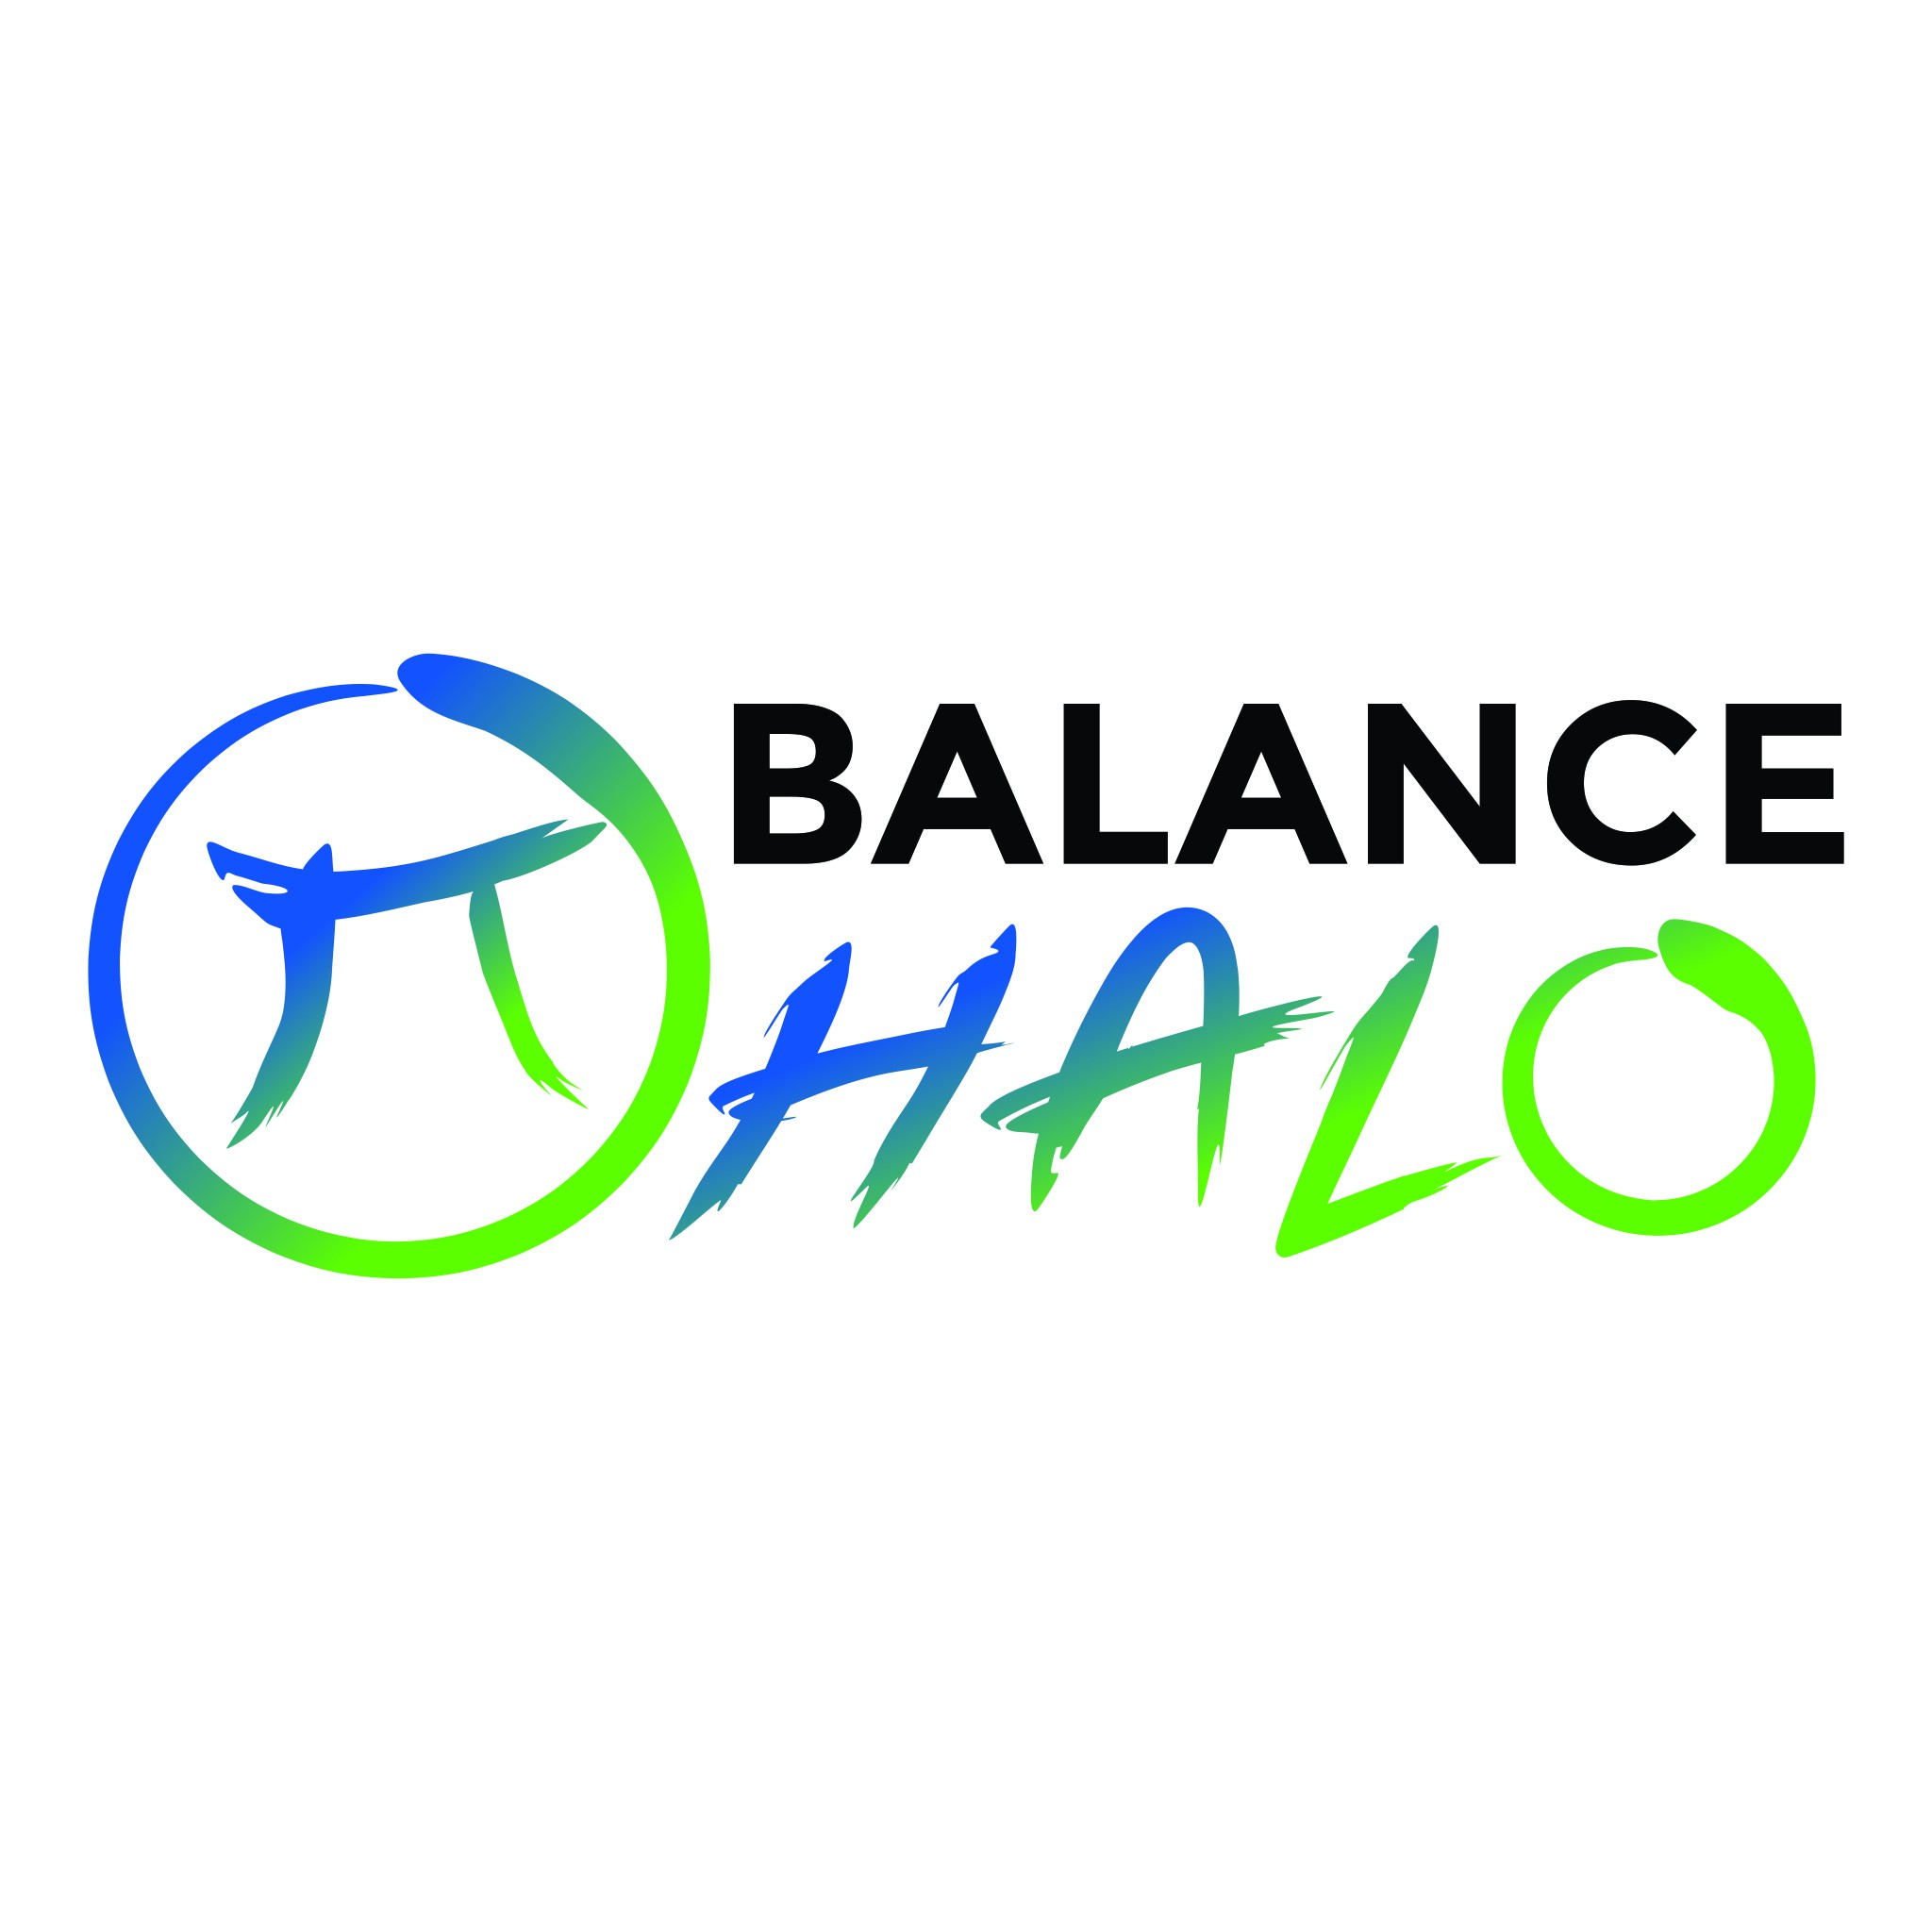 Create a best - BALANCE- HALO Logo and help lots of people to find their own balance!